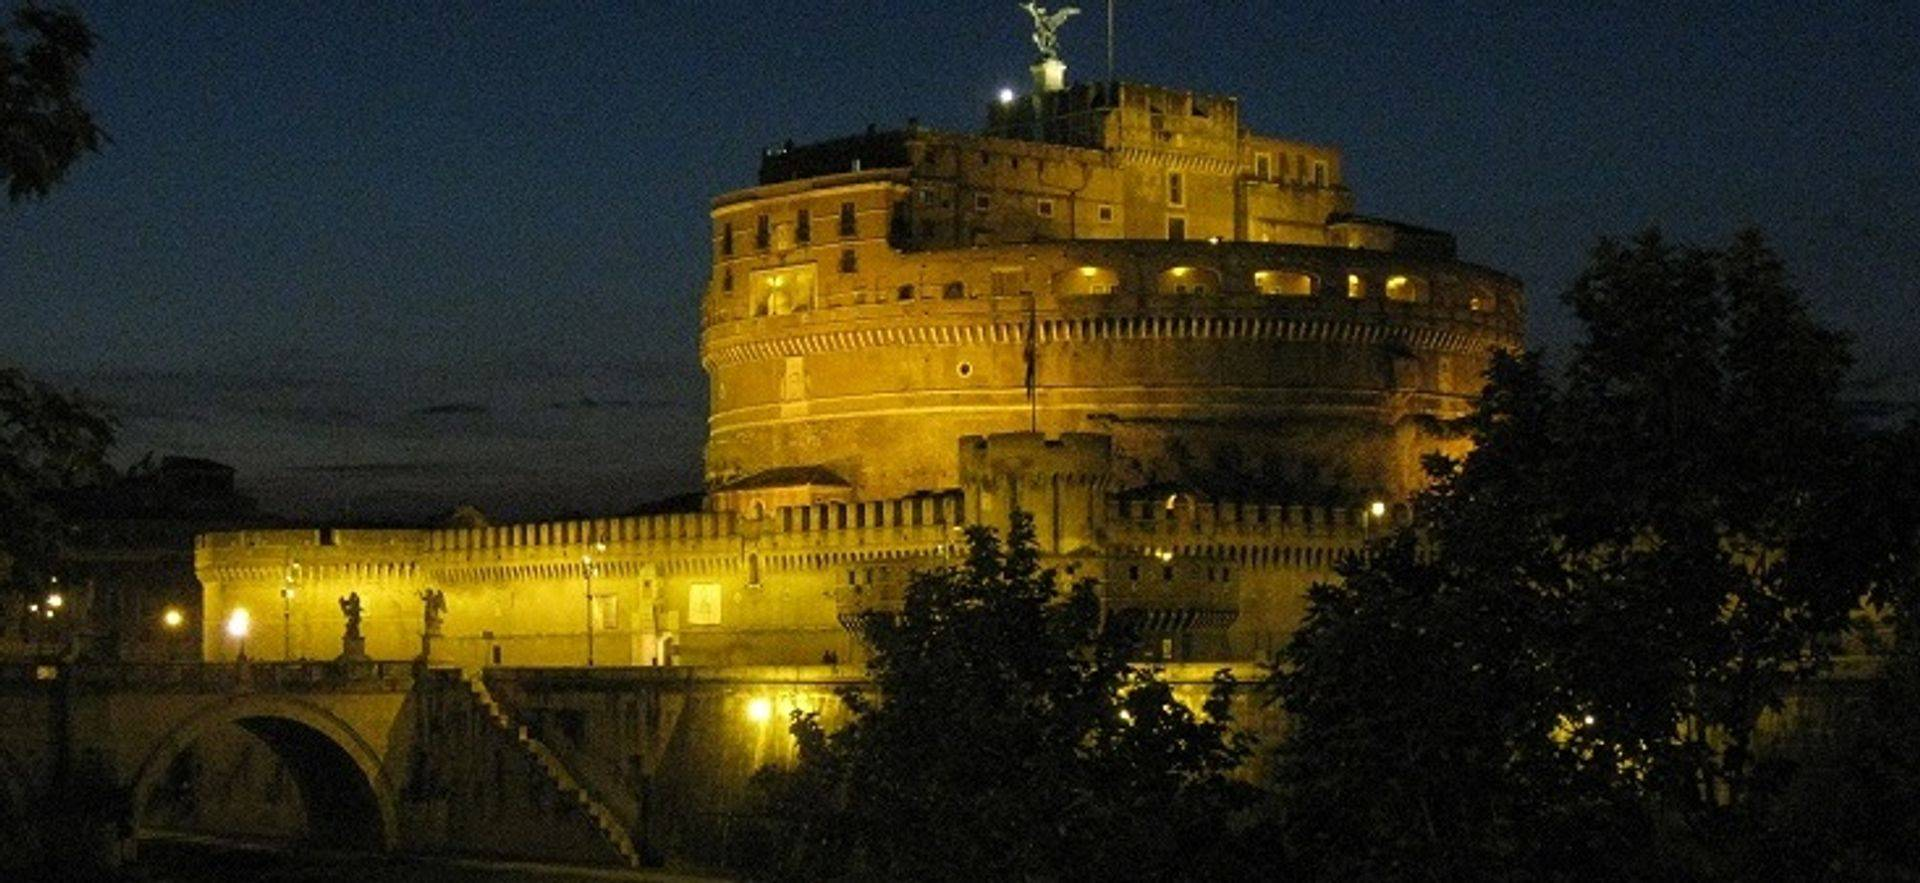 "womens travel.jpg alt= womens travel, castel sant angelo at night,rome, italy "">"